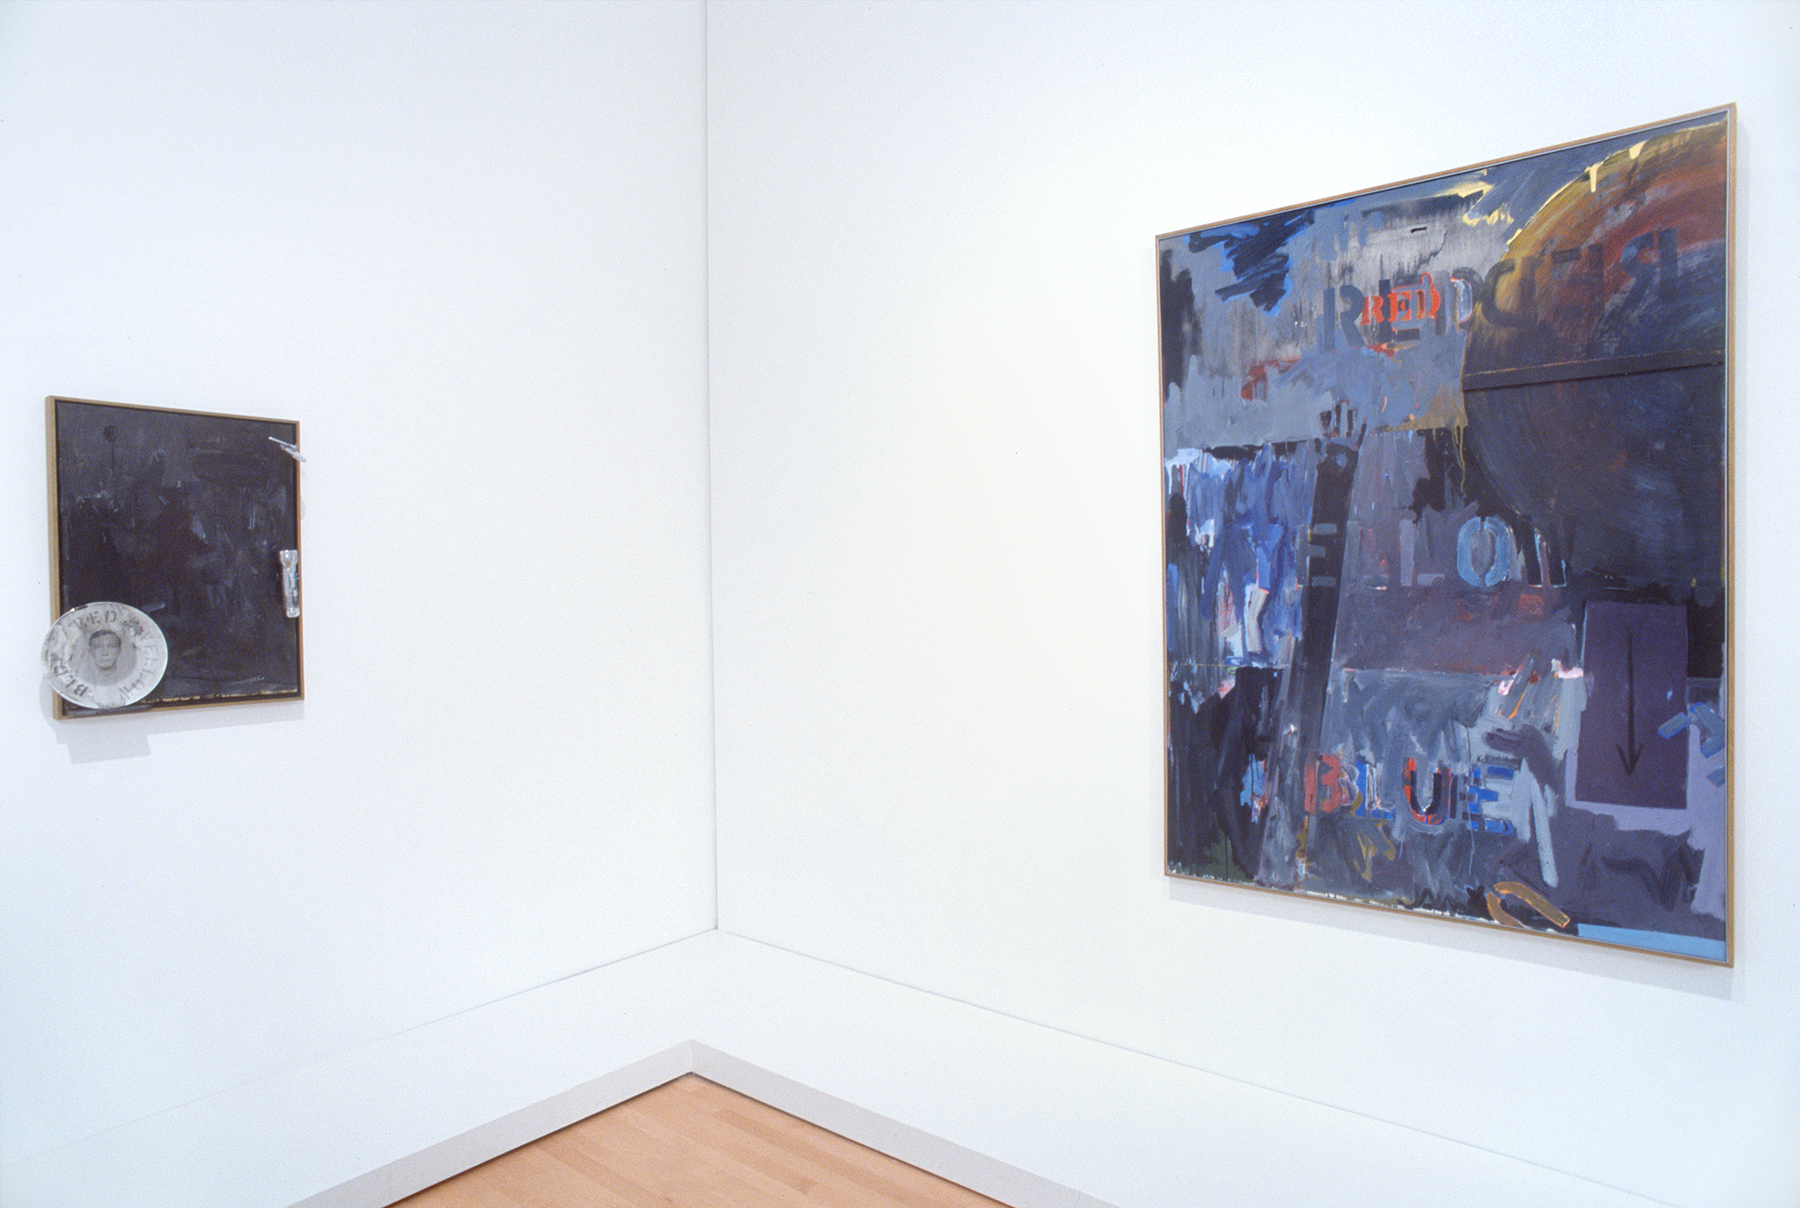 Two works by Jasper Johns